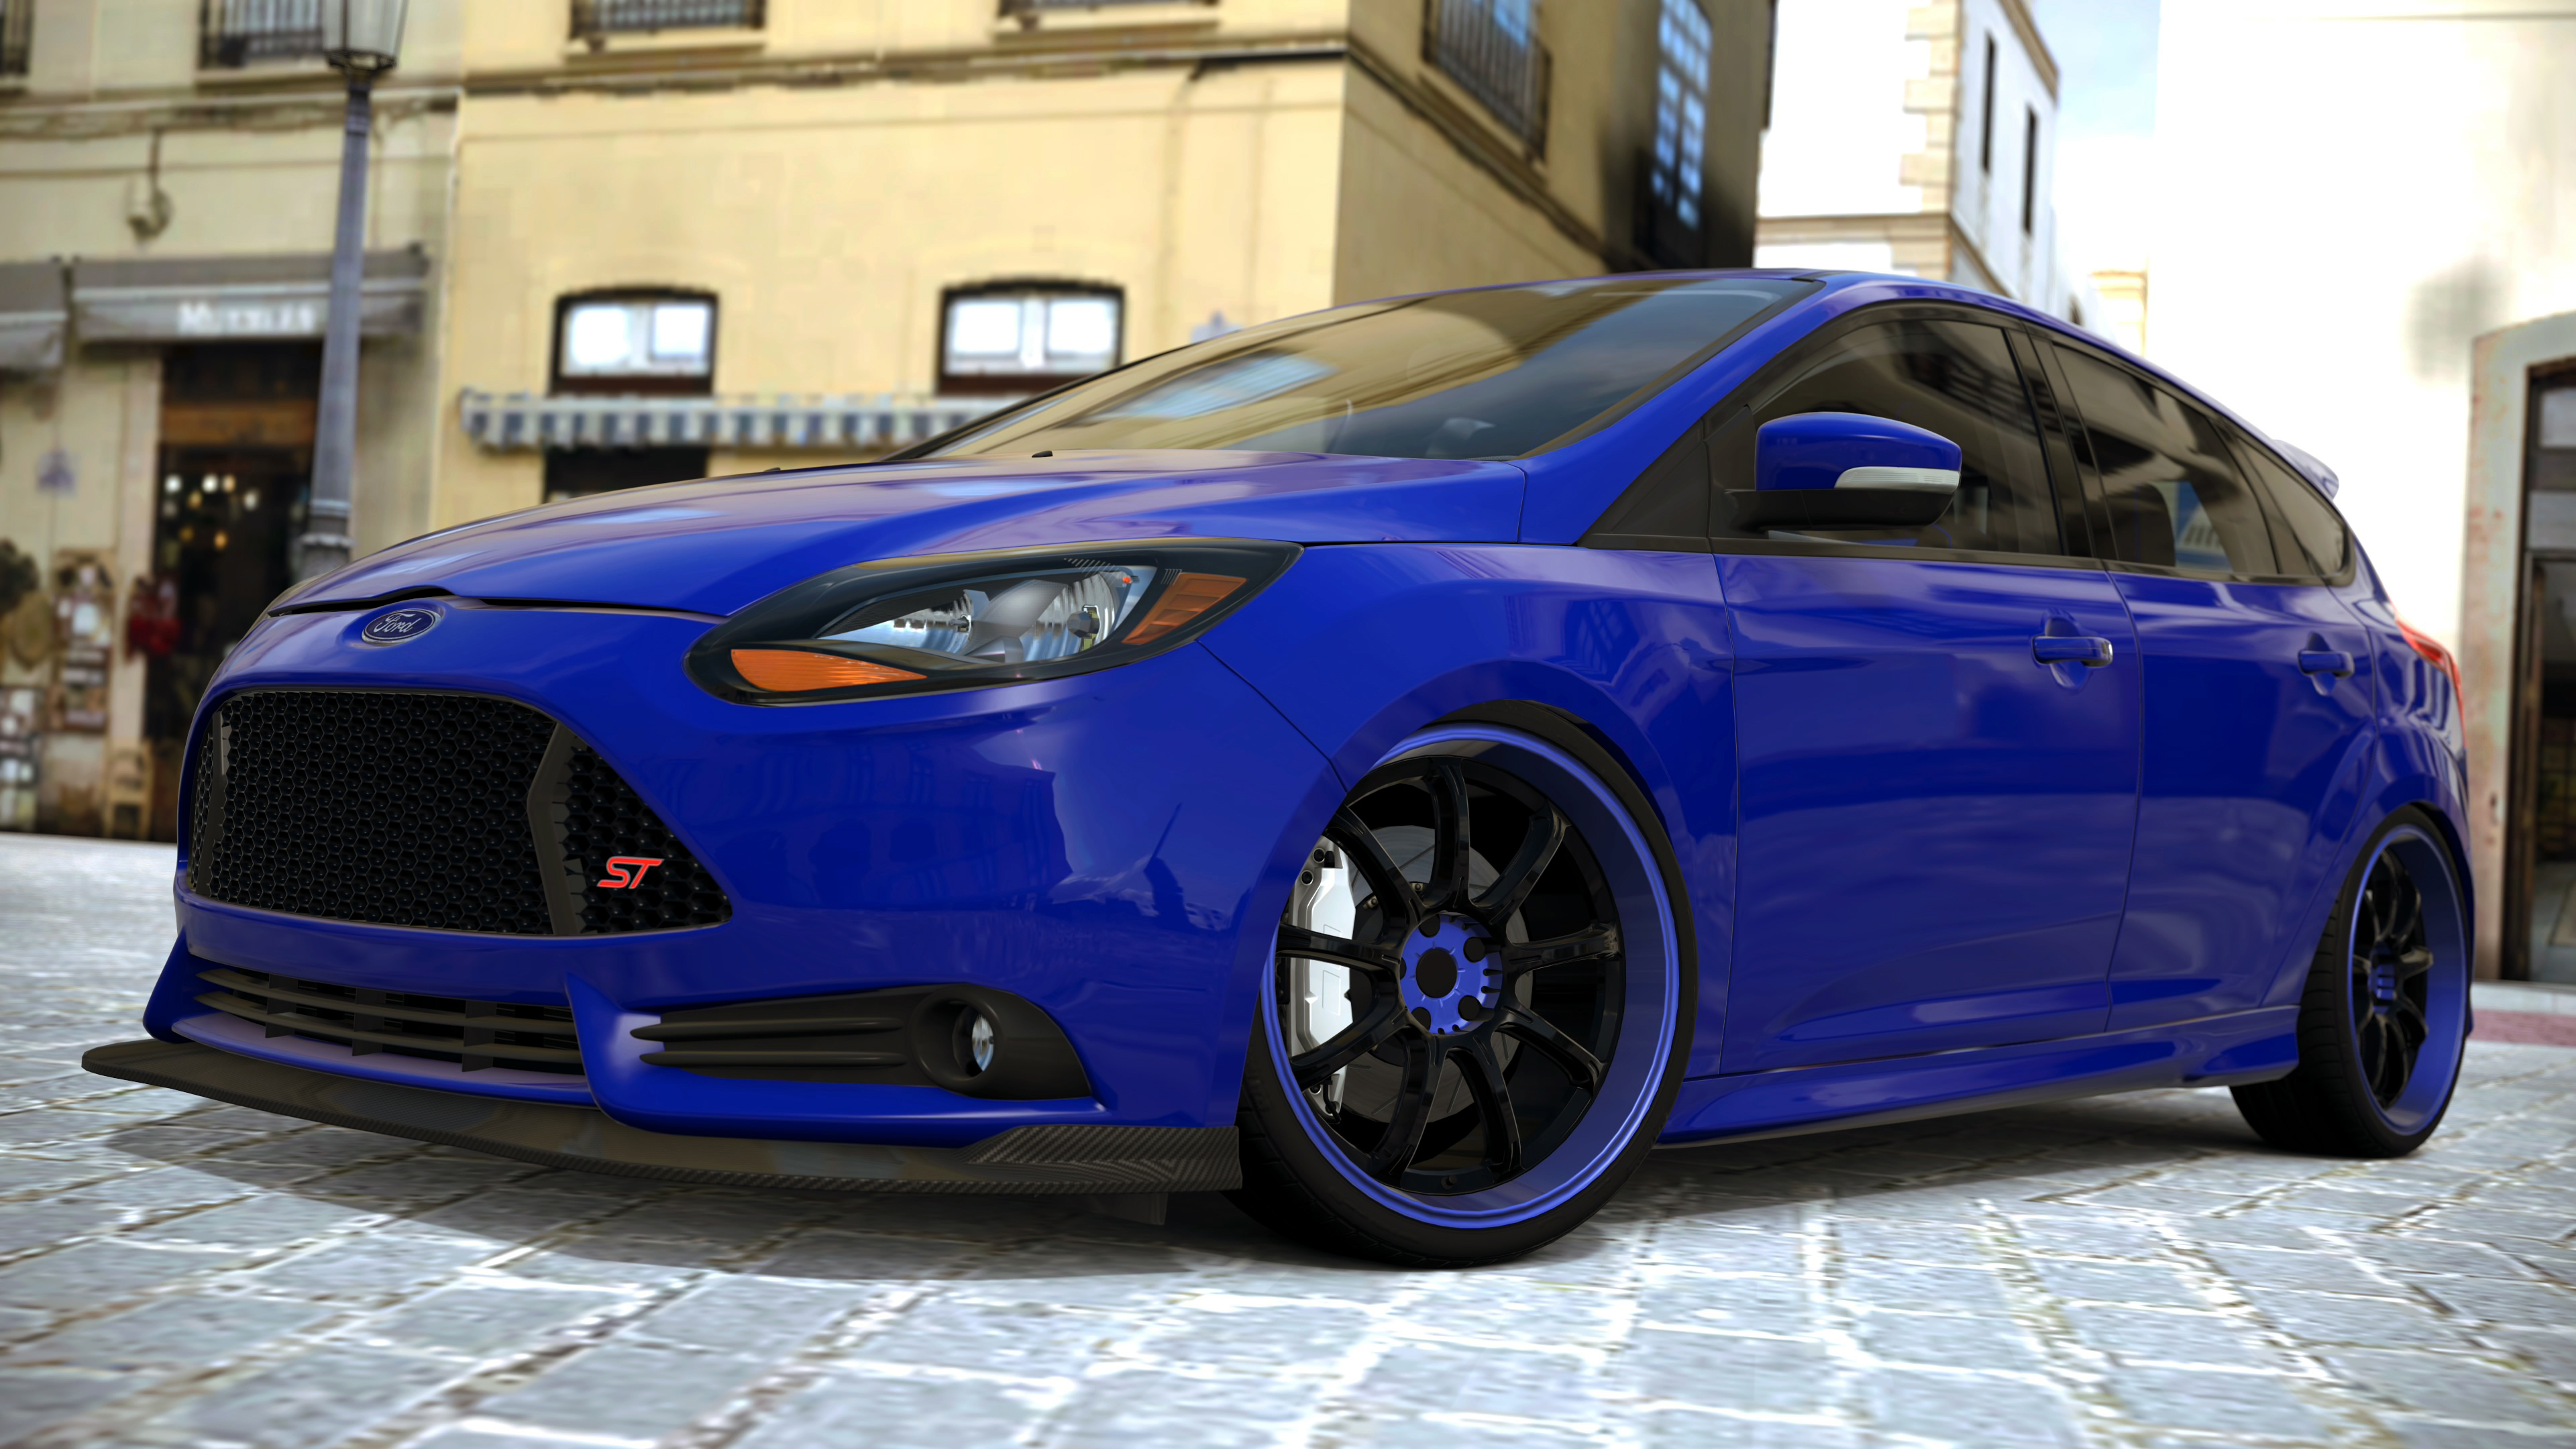 Ford Focus ST (Gran Turismo 6) by Vertualissimo on DeviantArt